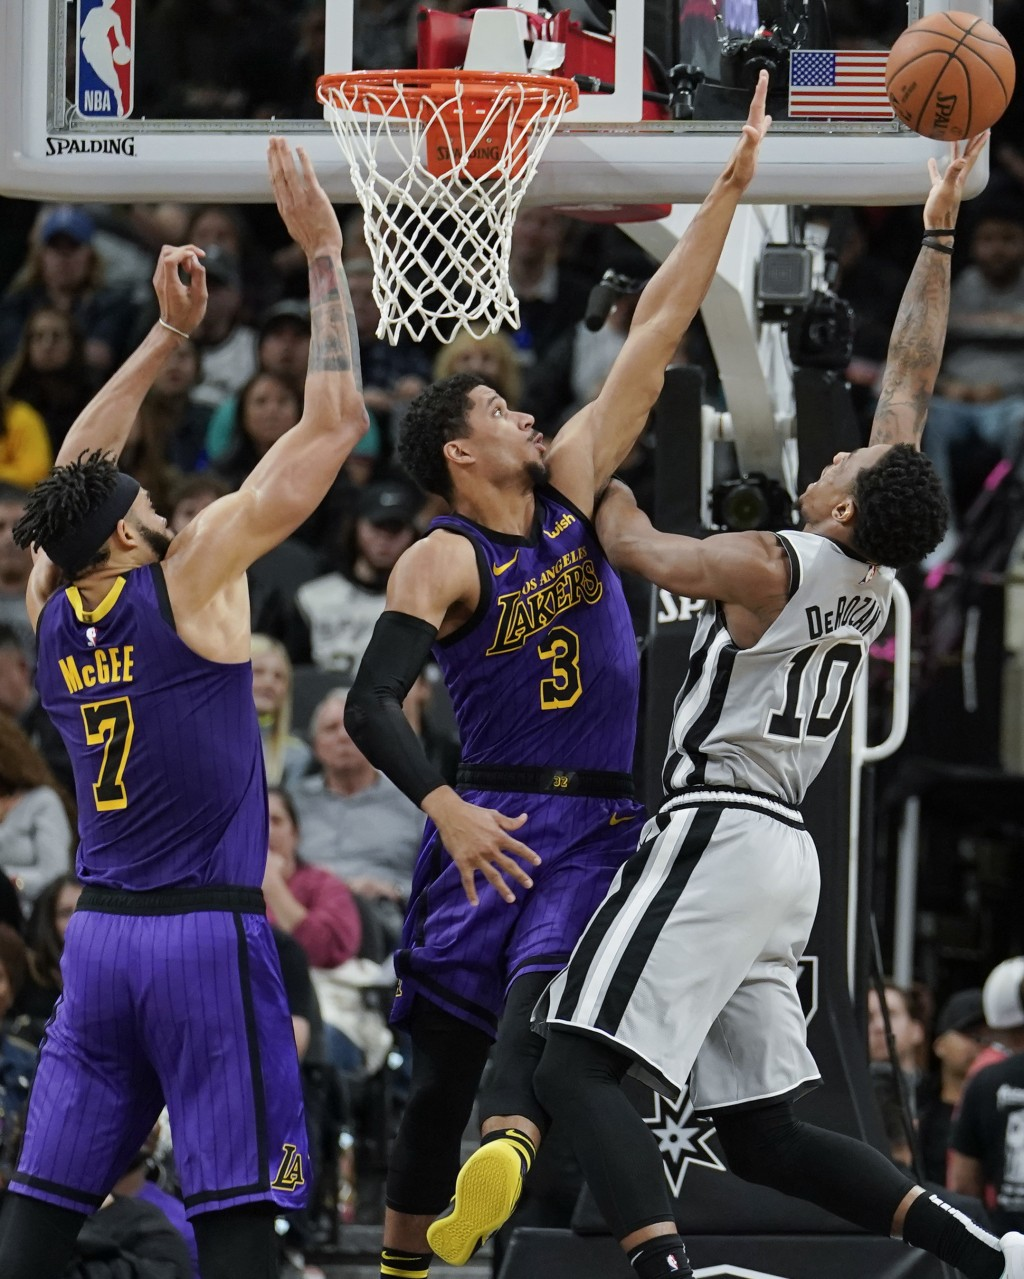 San Antonio Spurs' DeMar DeRozan (10) shoots against Los Angeles Lakers' Josh Hart (3) and JaVale McGee during the first half of an NBA basketball gam